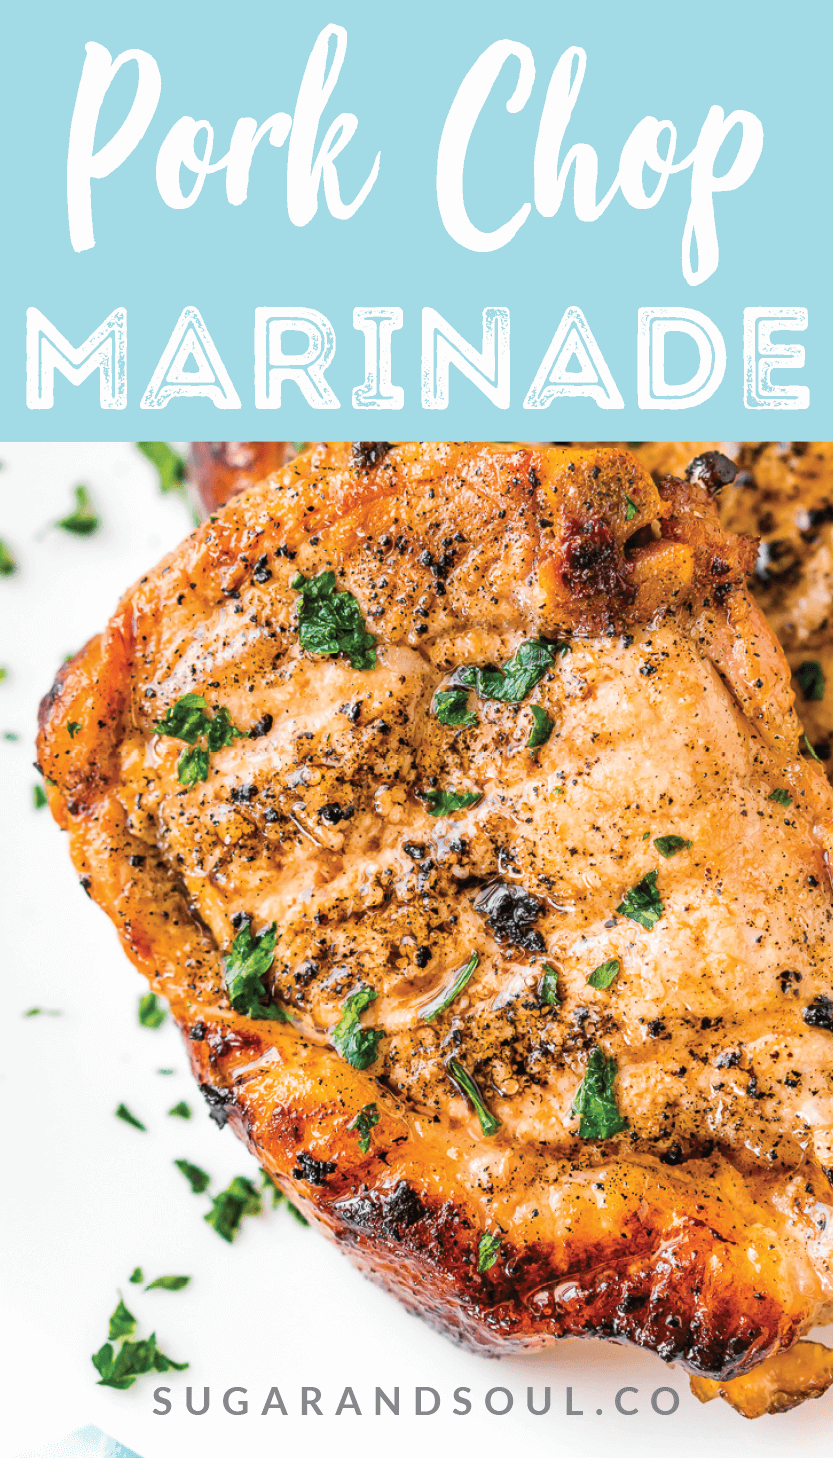 This Pork Chop Marinade makes meat juicy, tender, and super flavorful. Made with apple cider vinegar, olive oil, garlic powder, ground mustard, coriander, sea salt, brown sugar and honey, you can whip it up for summer cookouts or weeknight dinners.